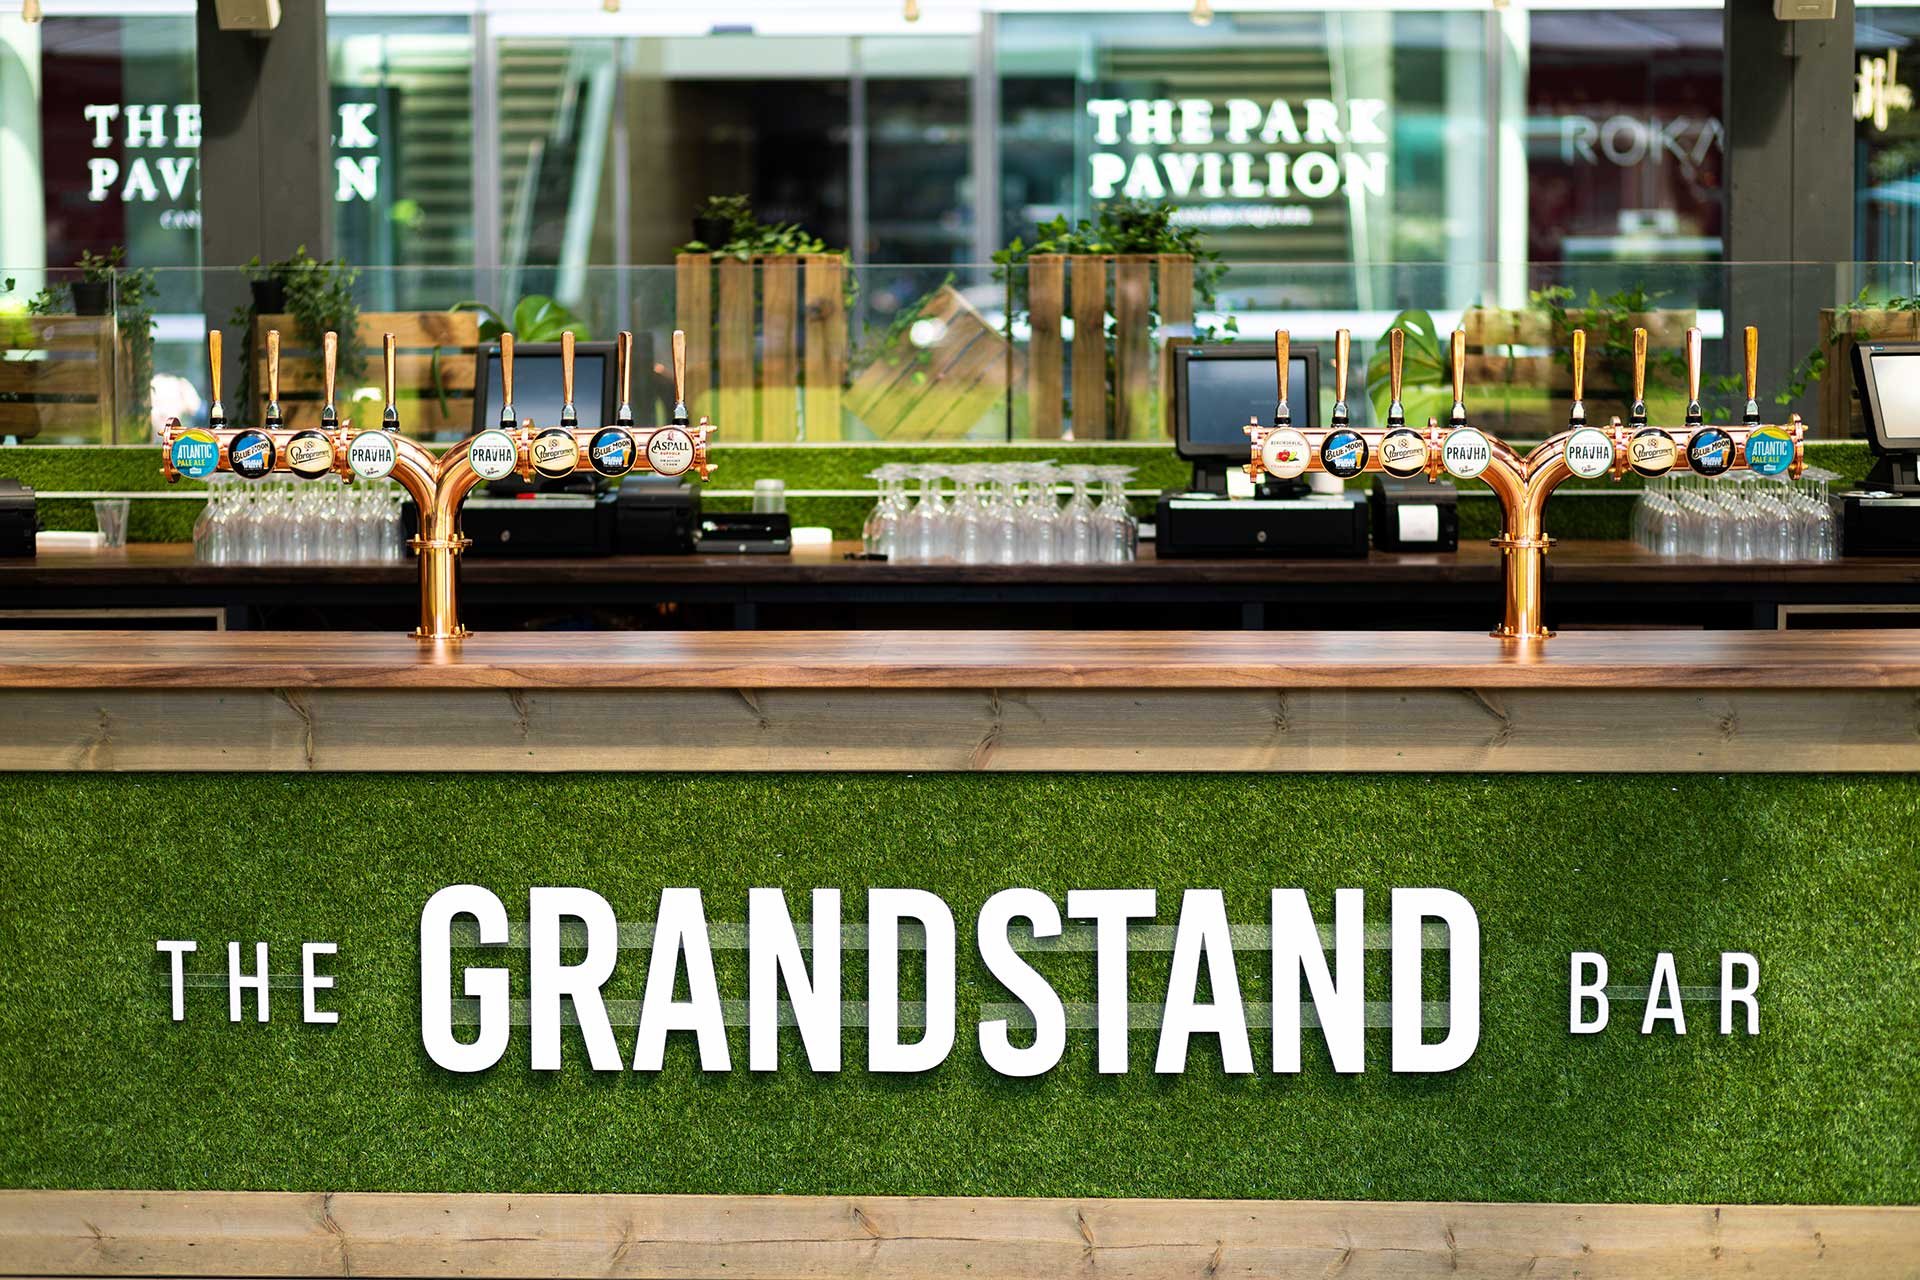 Grandstand Bar Cinema